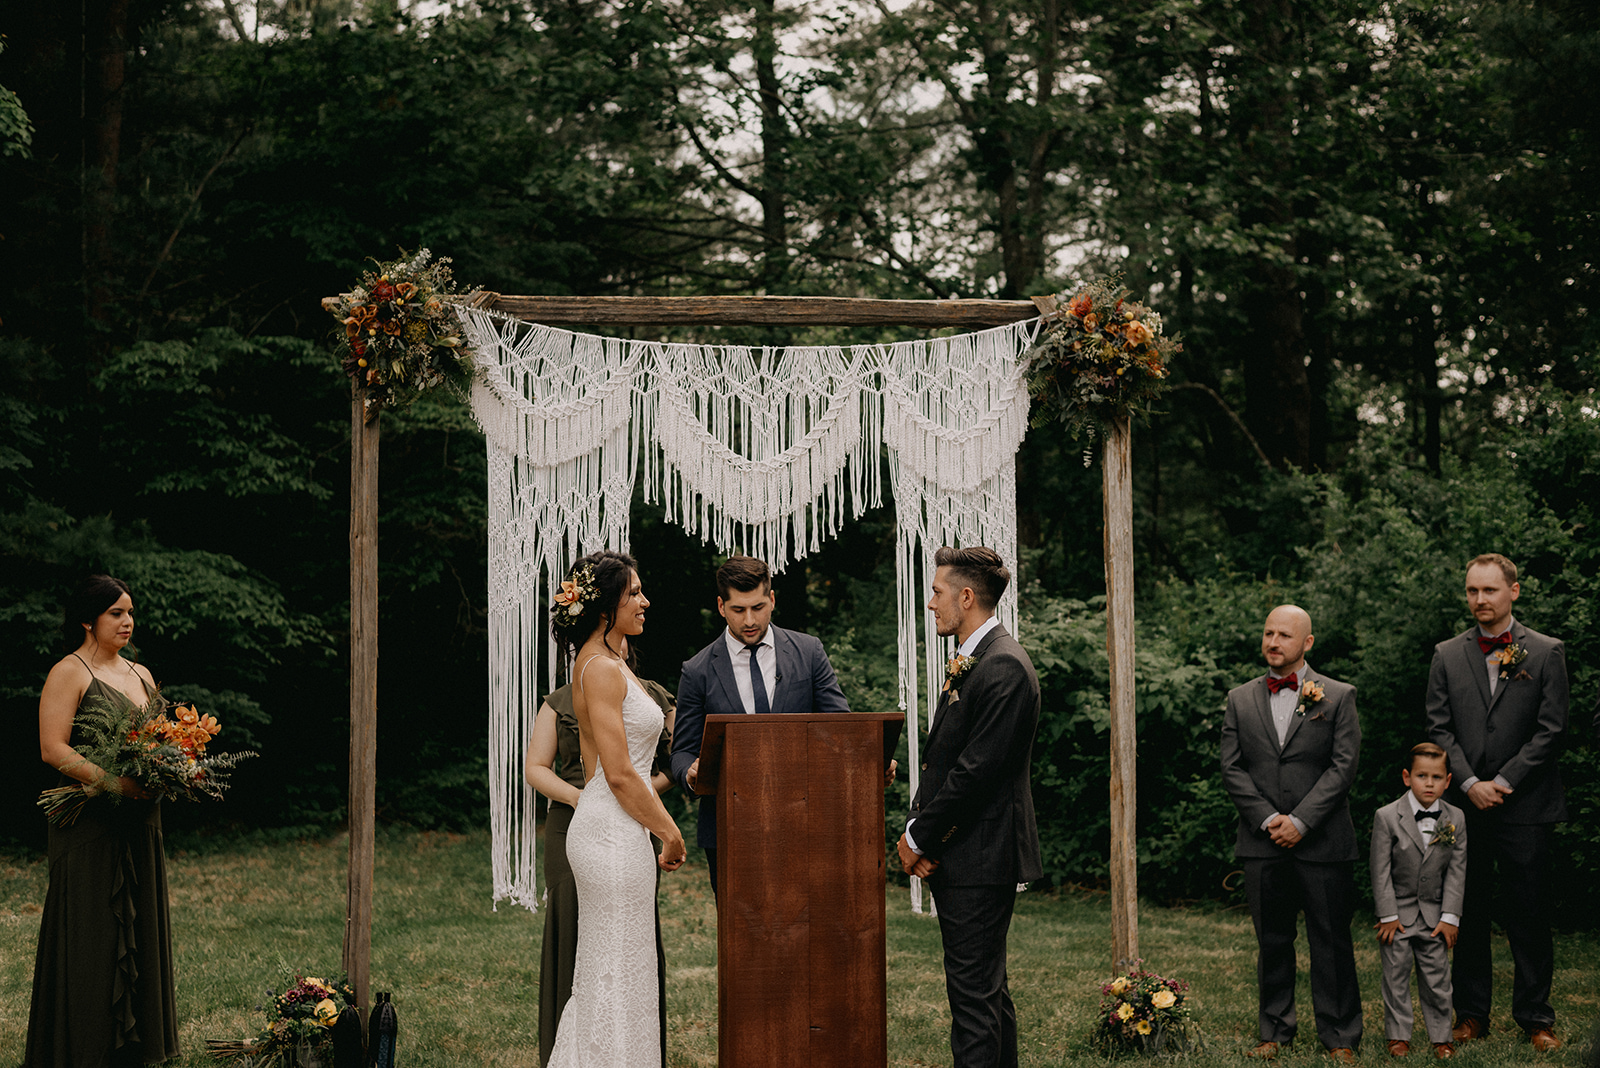 Bride and groom at the ceremony altar - Pearl weddings & Events